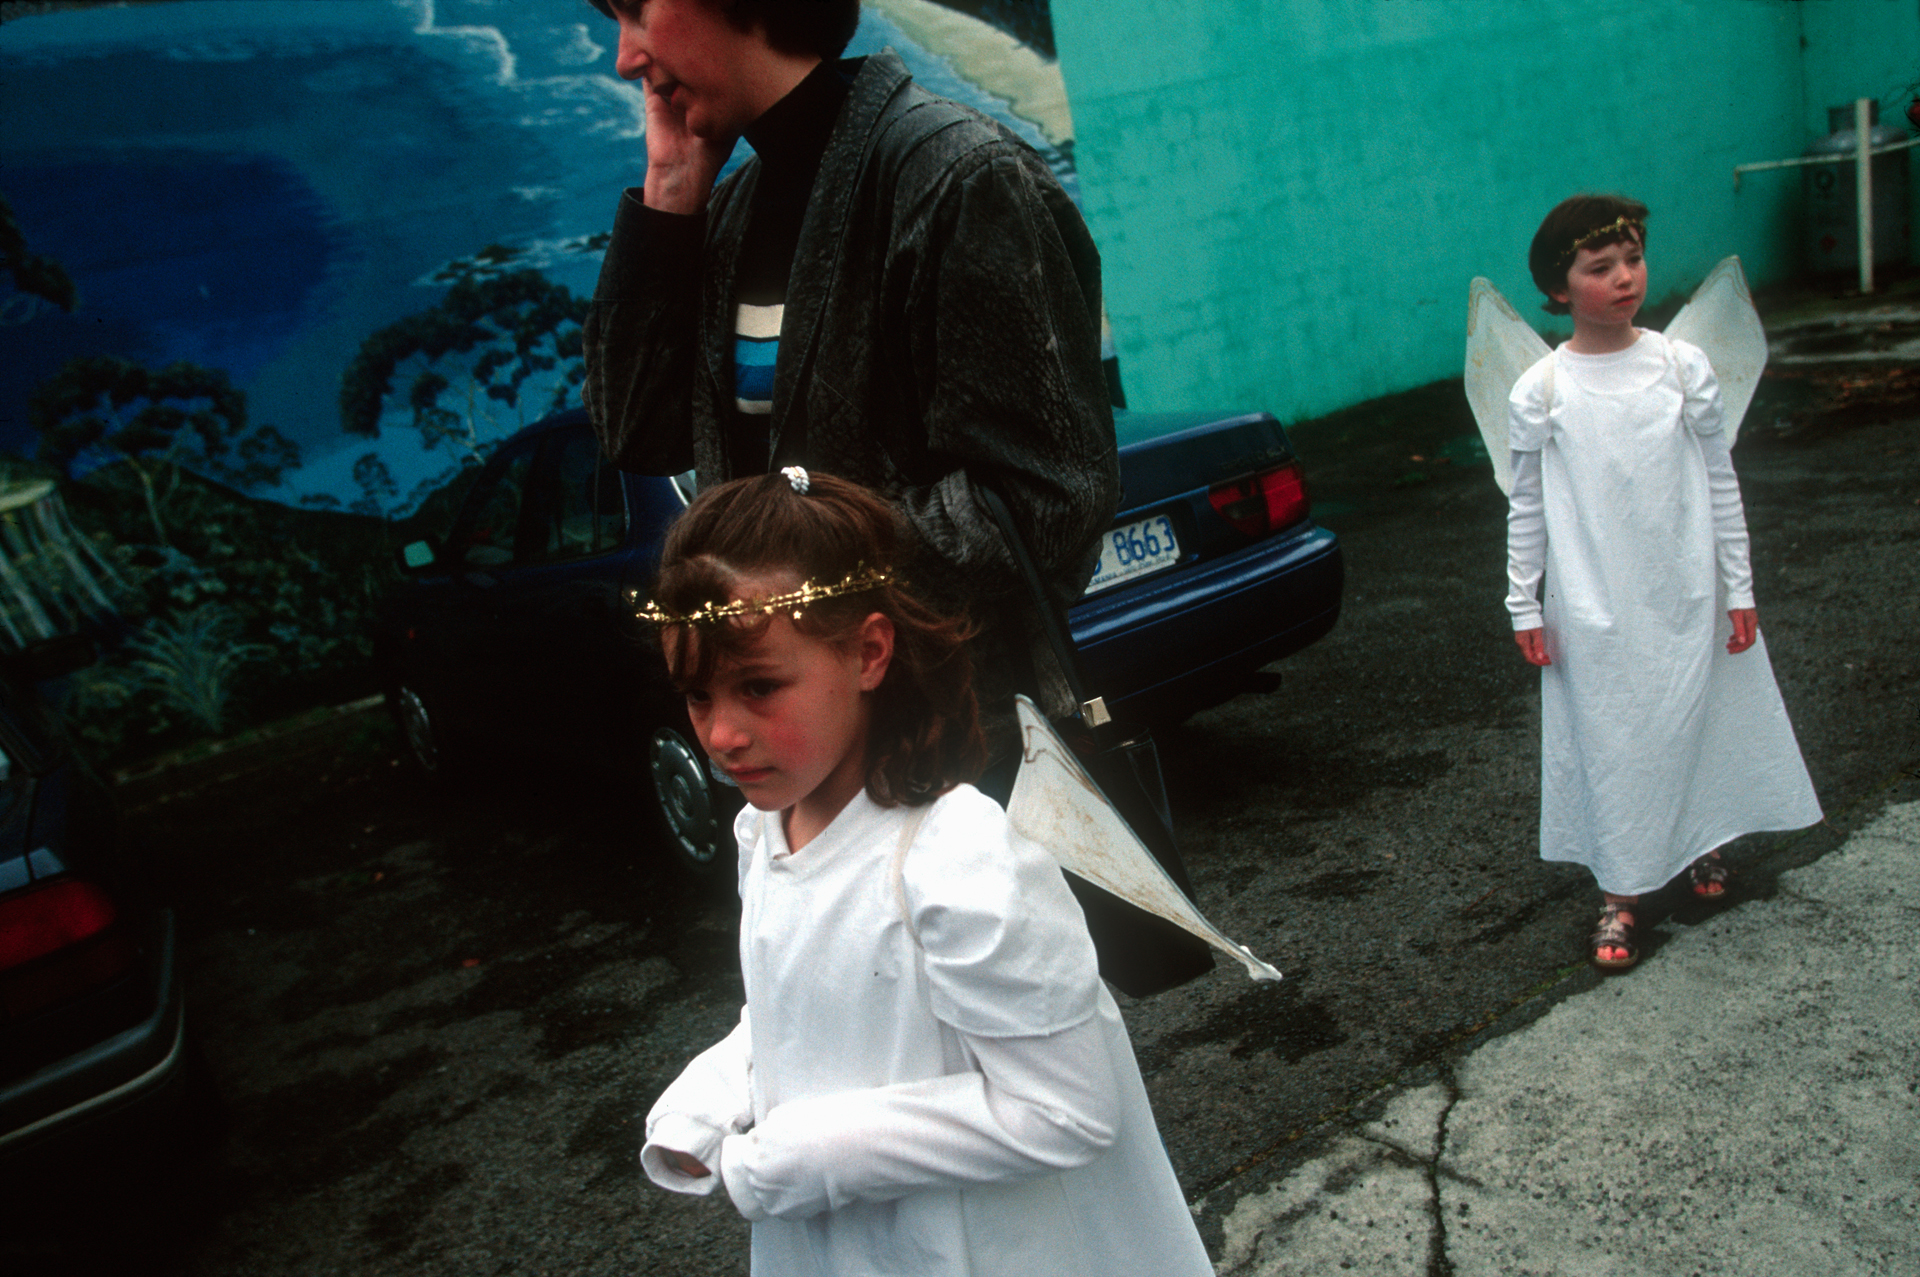 Two young girls dressed as angels are escorted by their mother to the Hobart annual Christmas Parade that kicks off the Christmas season in Tasmania.  Hobart